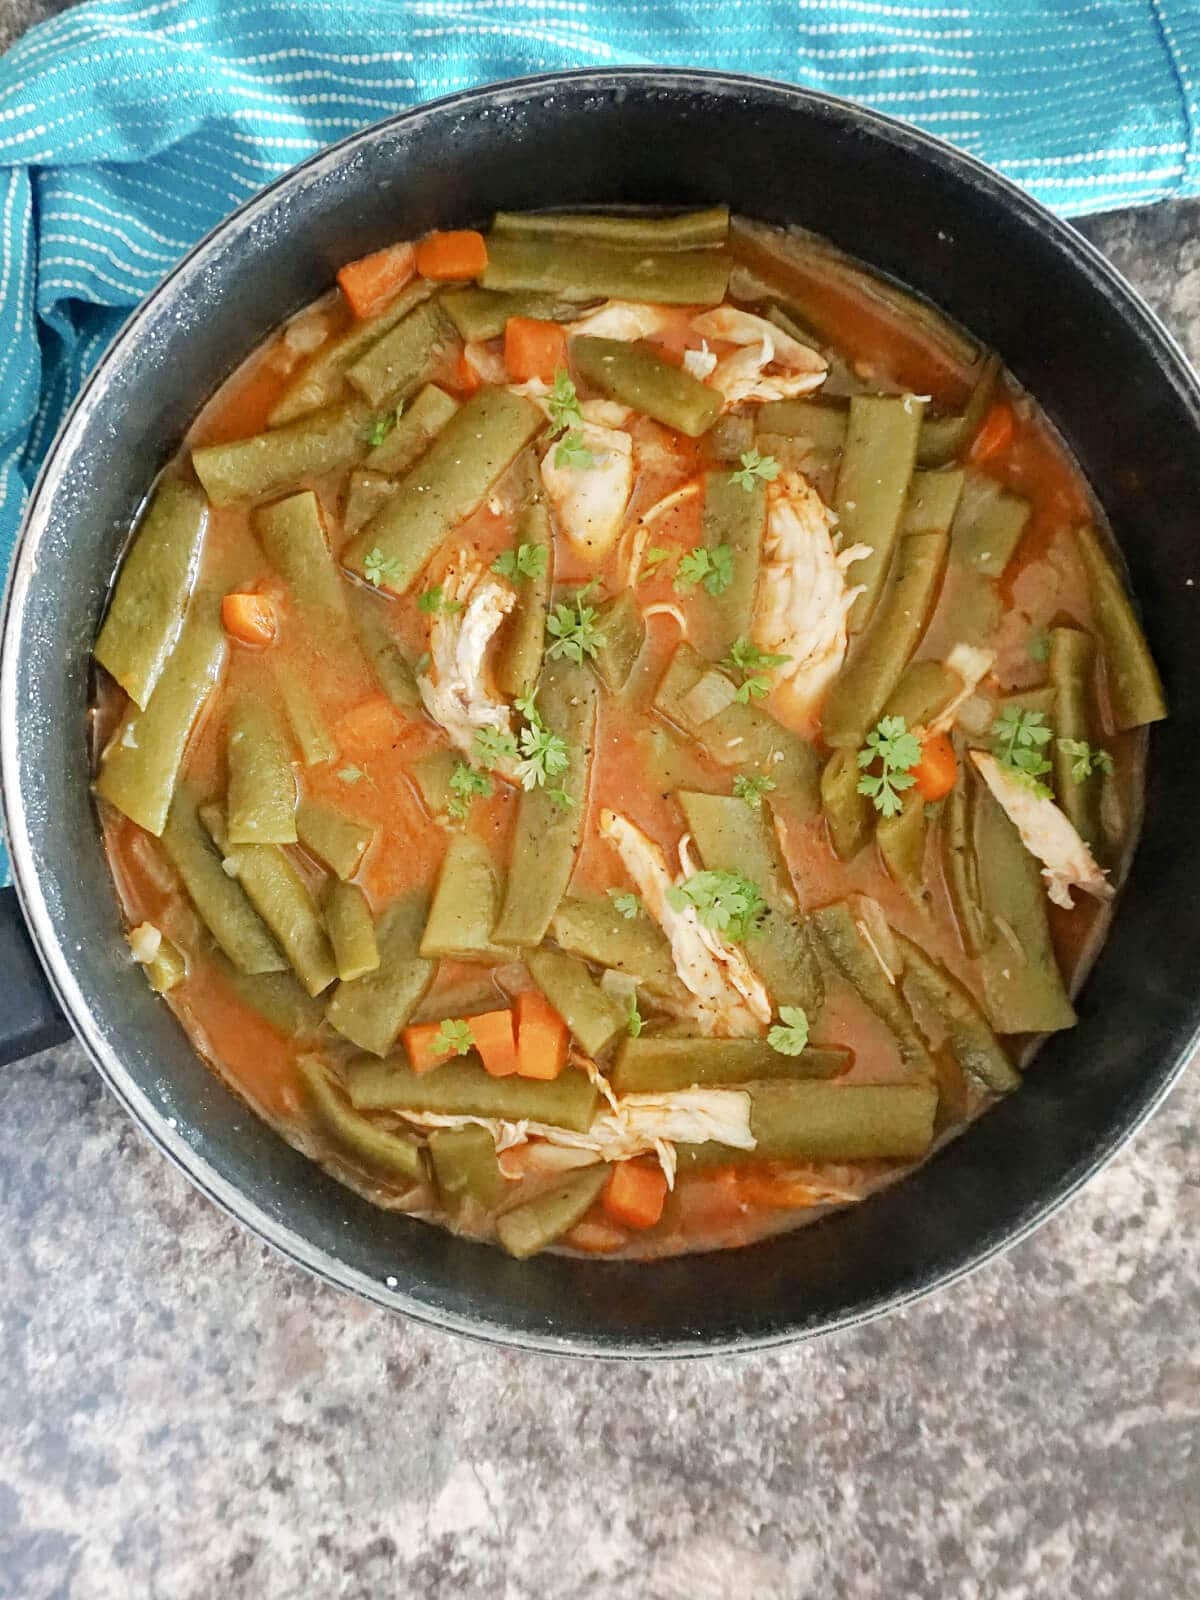 Overhead shoot of a pan with green bean stew with shredded chicken pieces